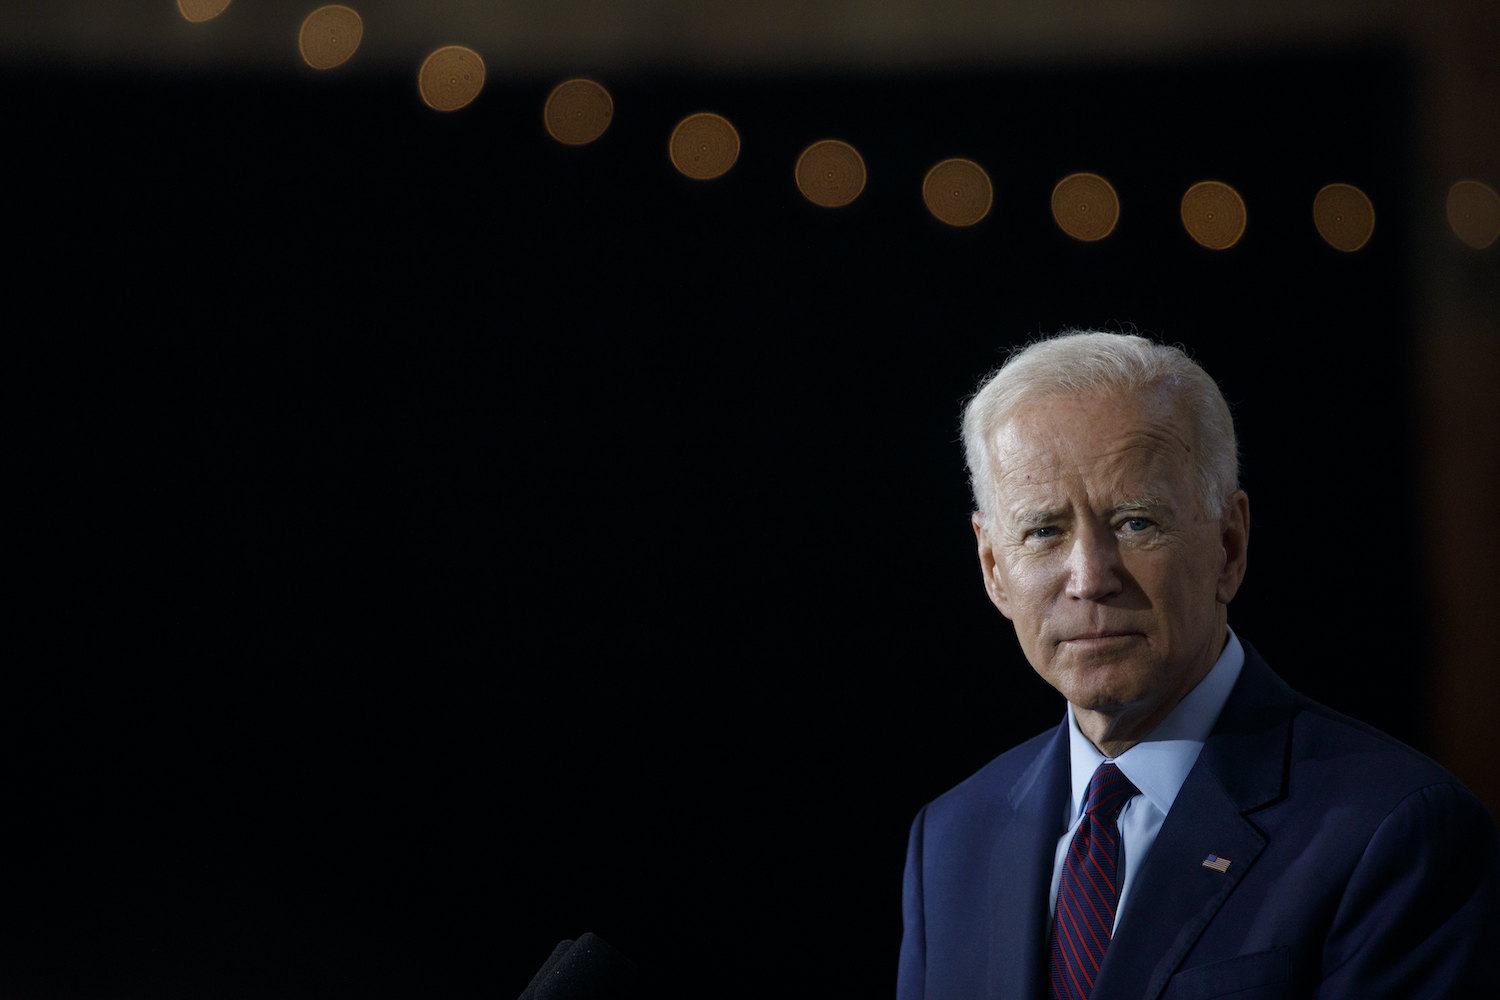 foreignpolicy.com - Colum Lynch - Washington's Foreign Diplomats Frozen Out by Team Biden